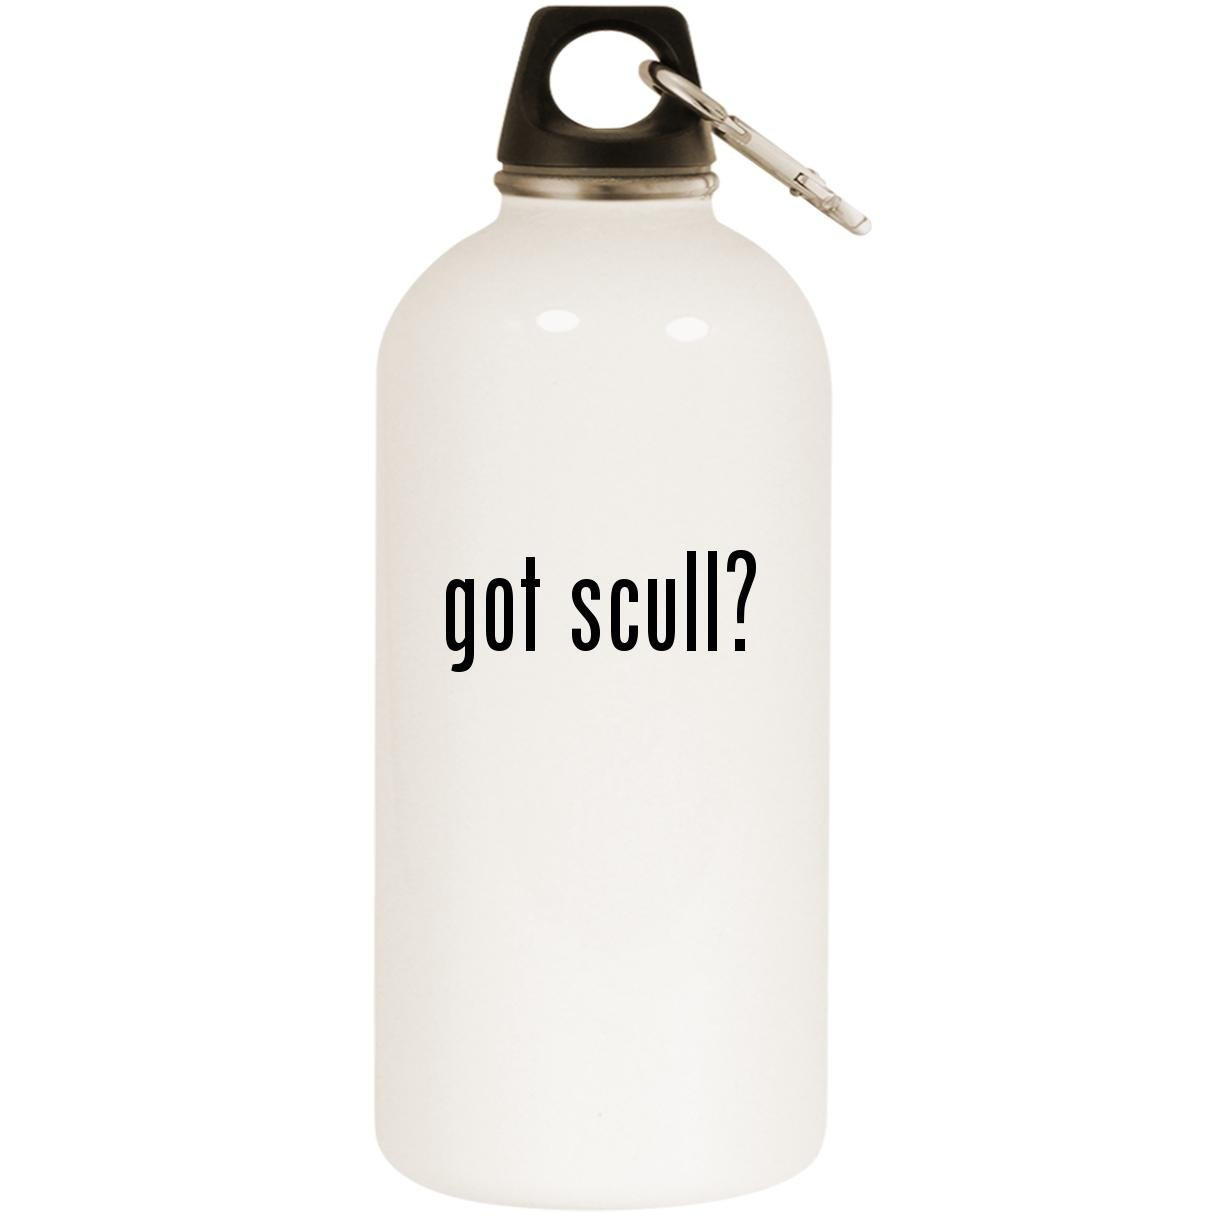 got scull? - White 20oz Stainless Steel Water Bottle with Carabiner